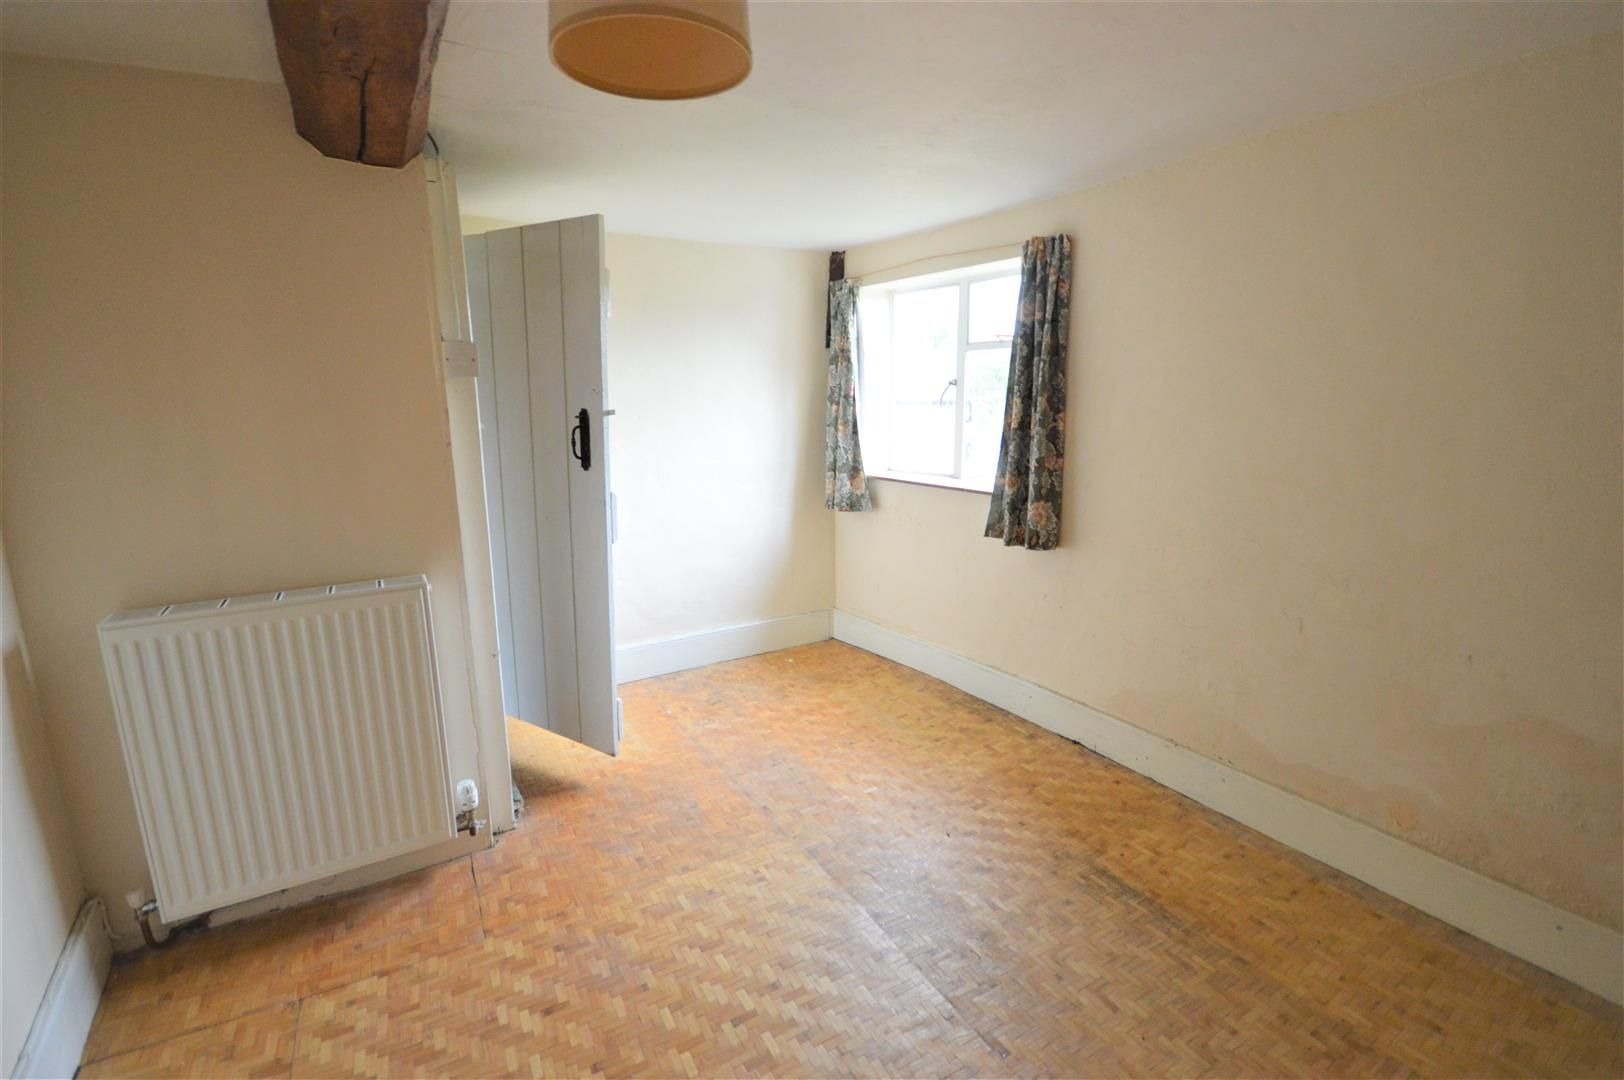 3 bed cottage for sale in Weobley  - Property Image 11